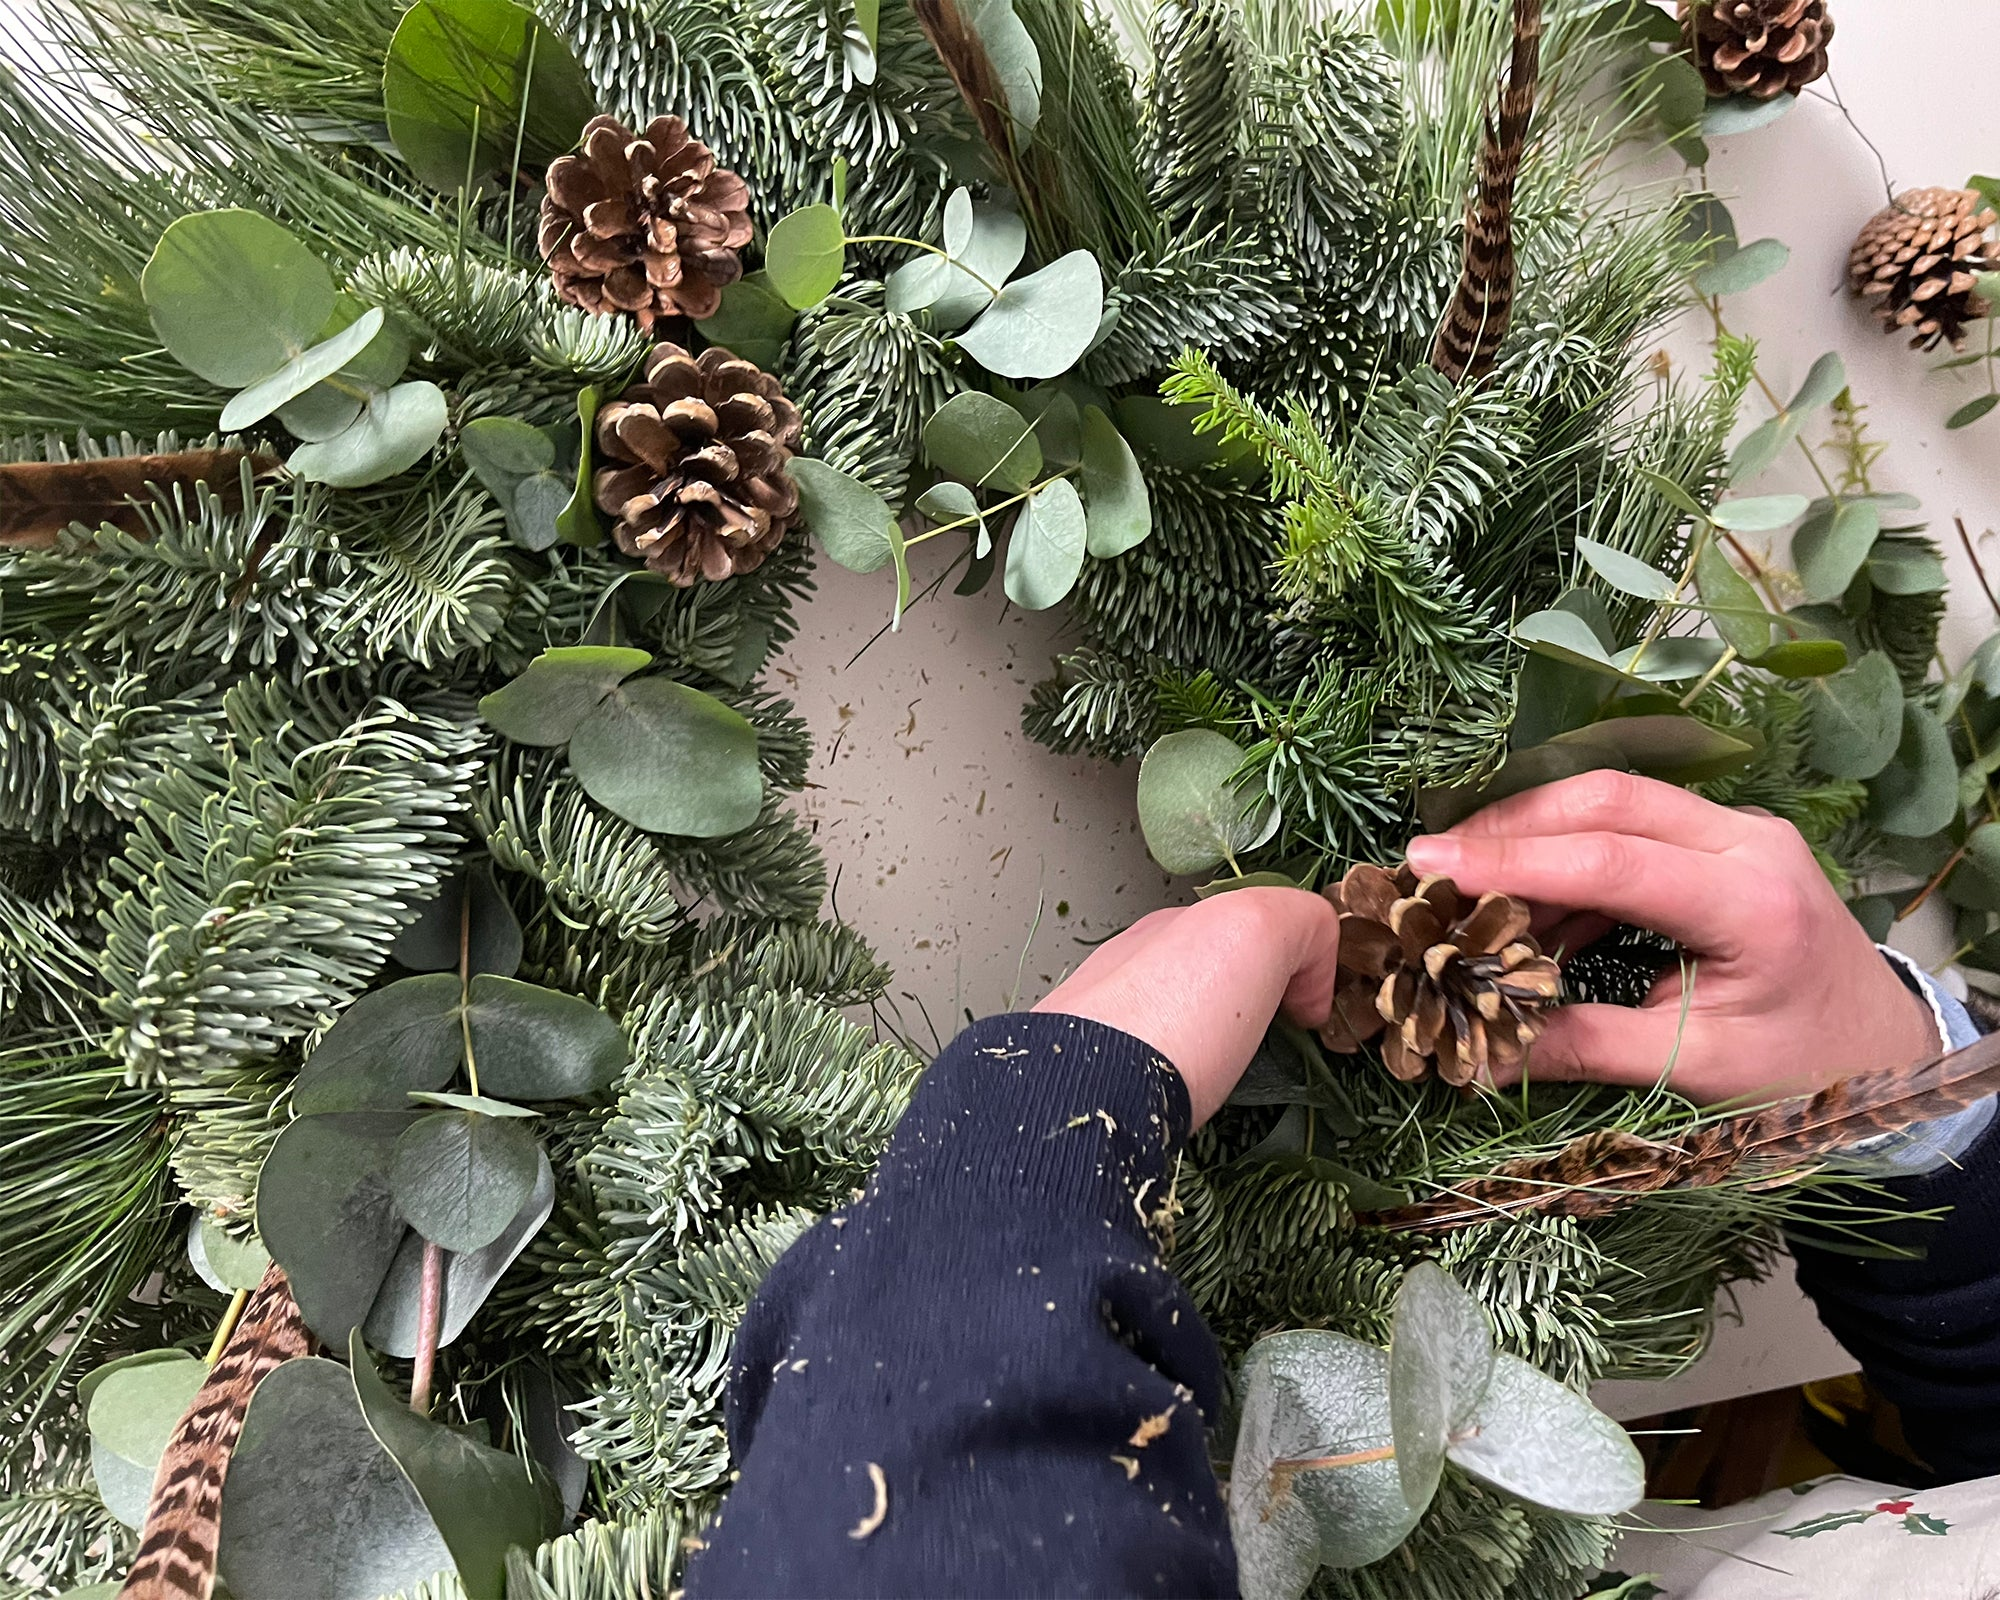 How To Make A Christmas Wreath by Sophie Allport